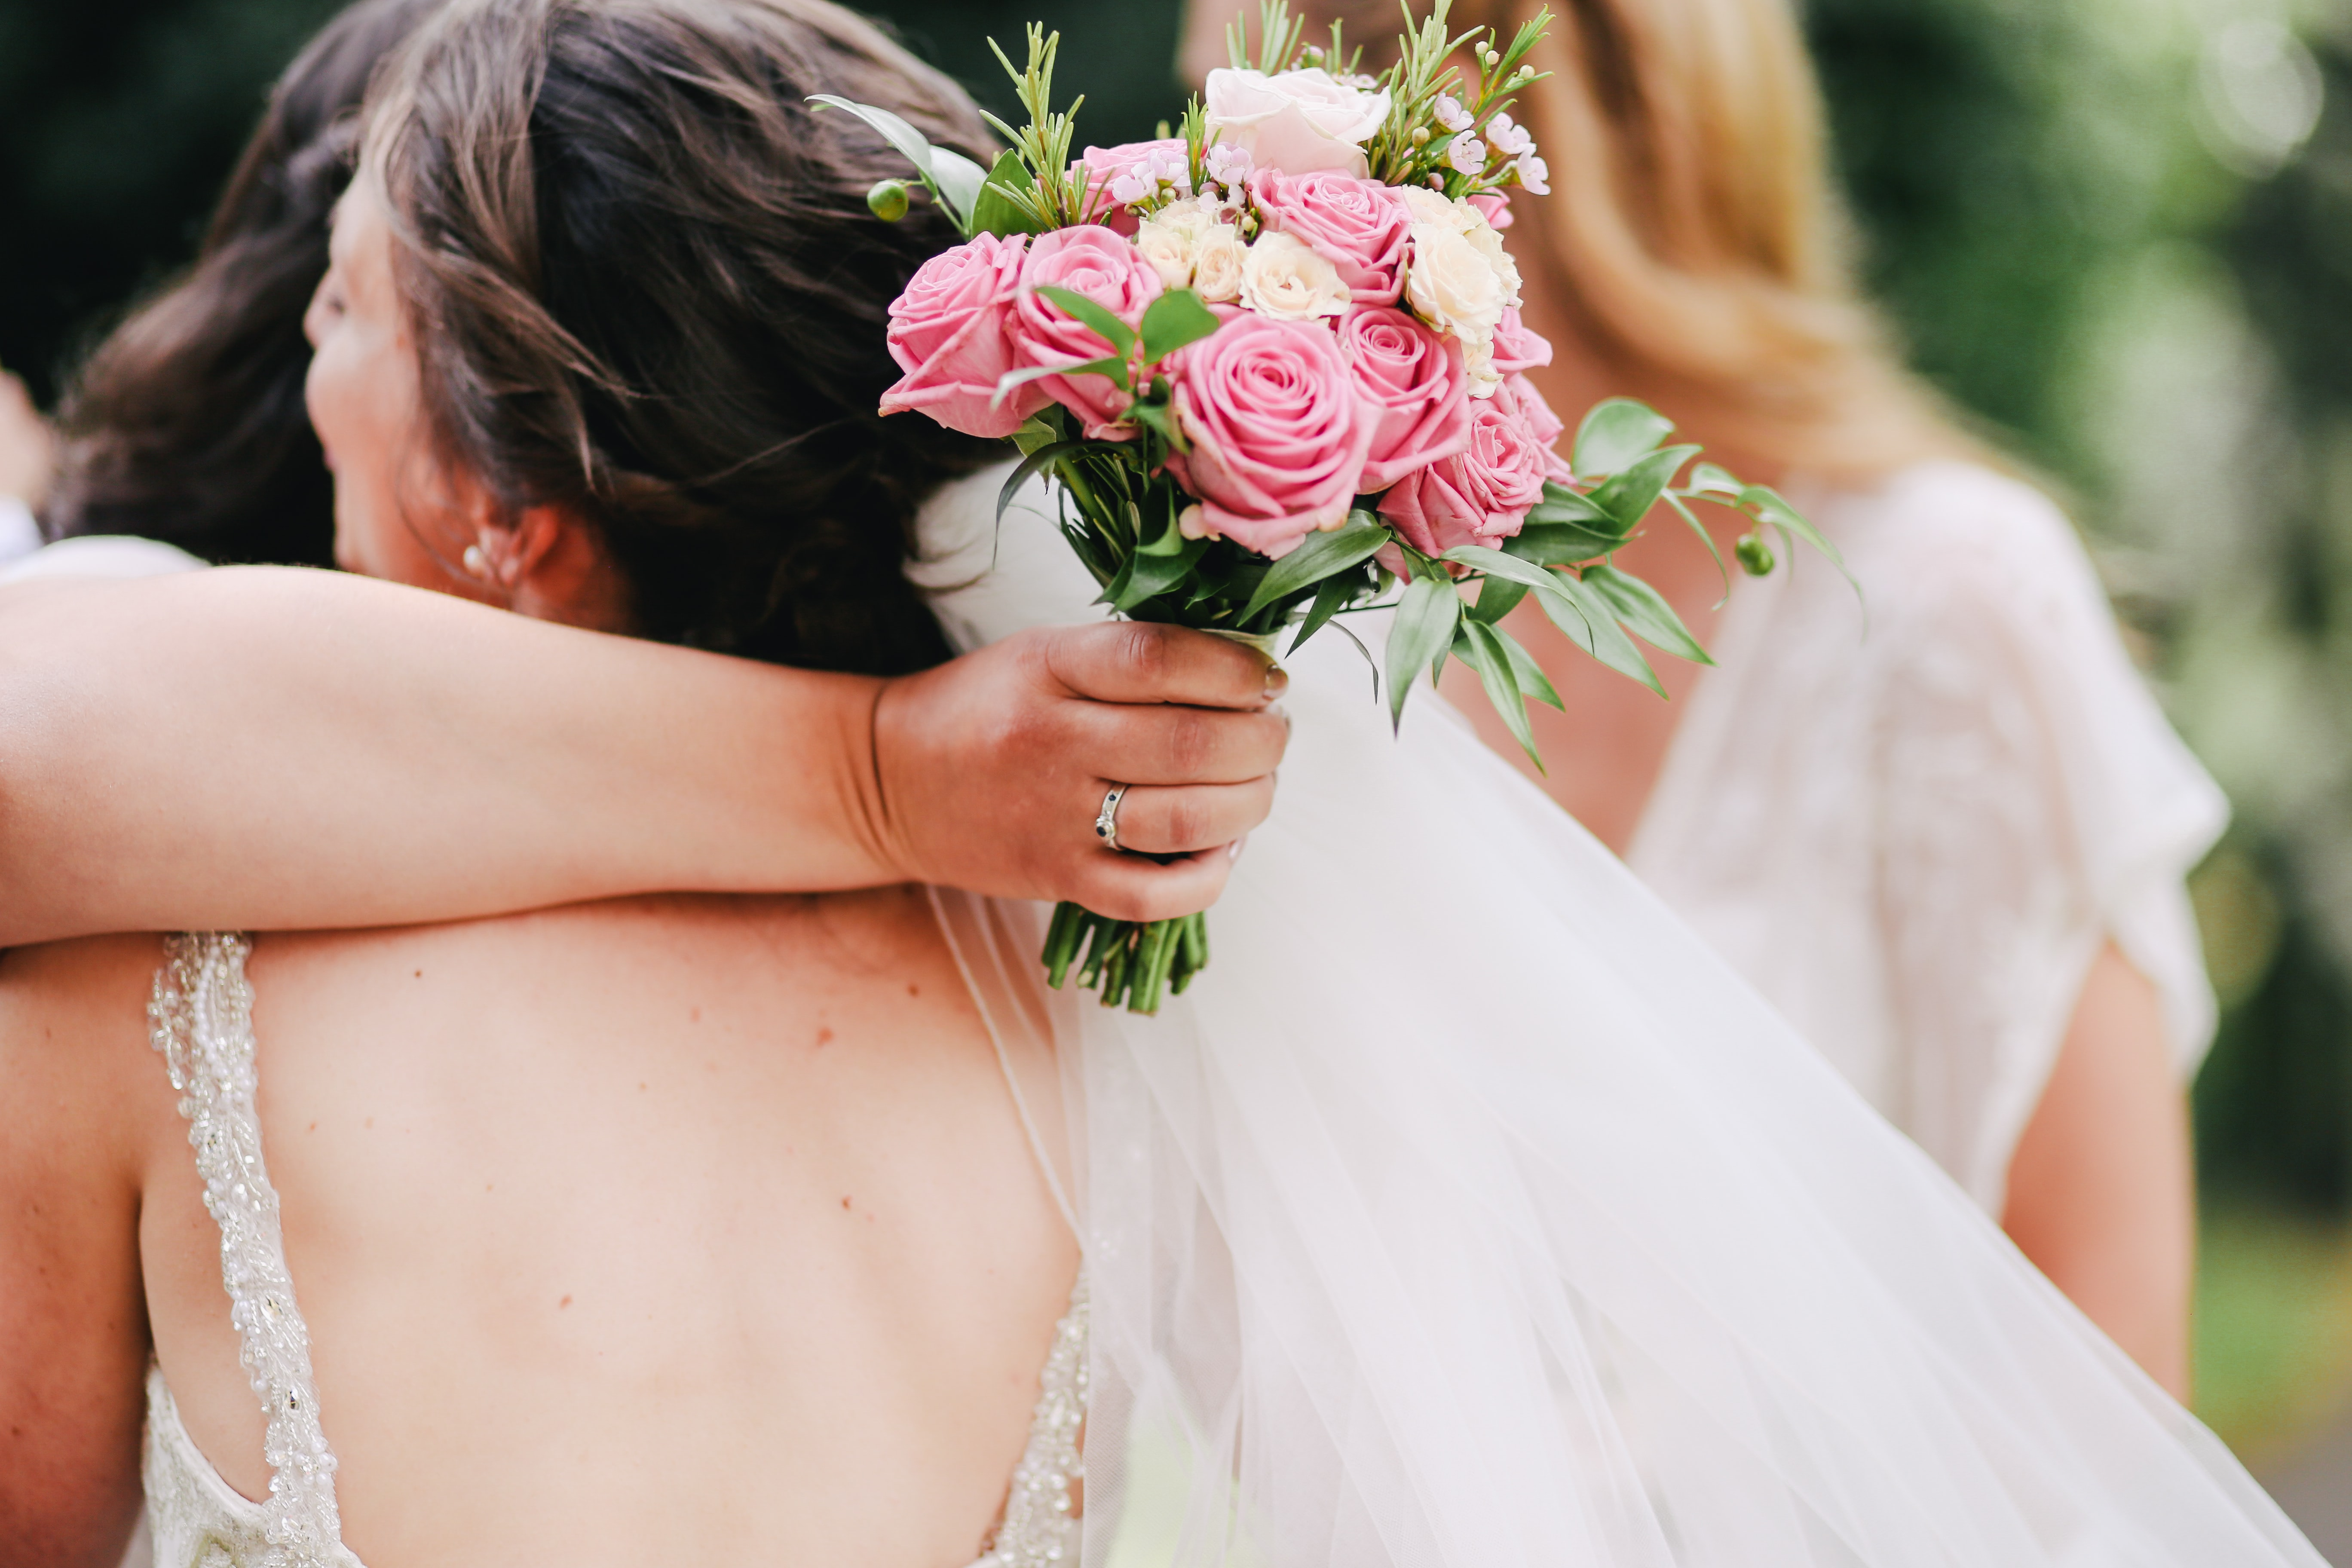 woman hugging another woman while holding bouquet of pink roses